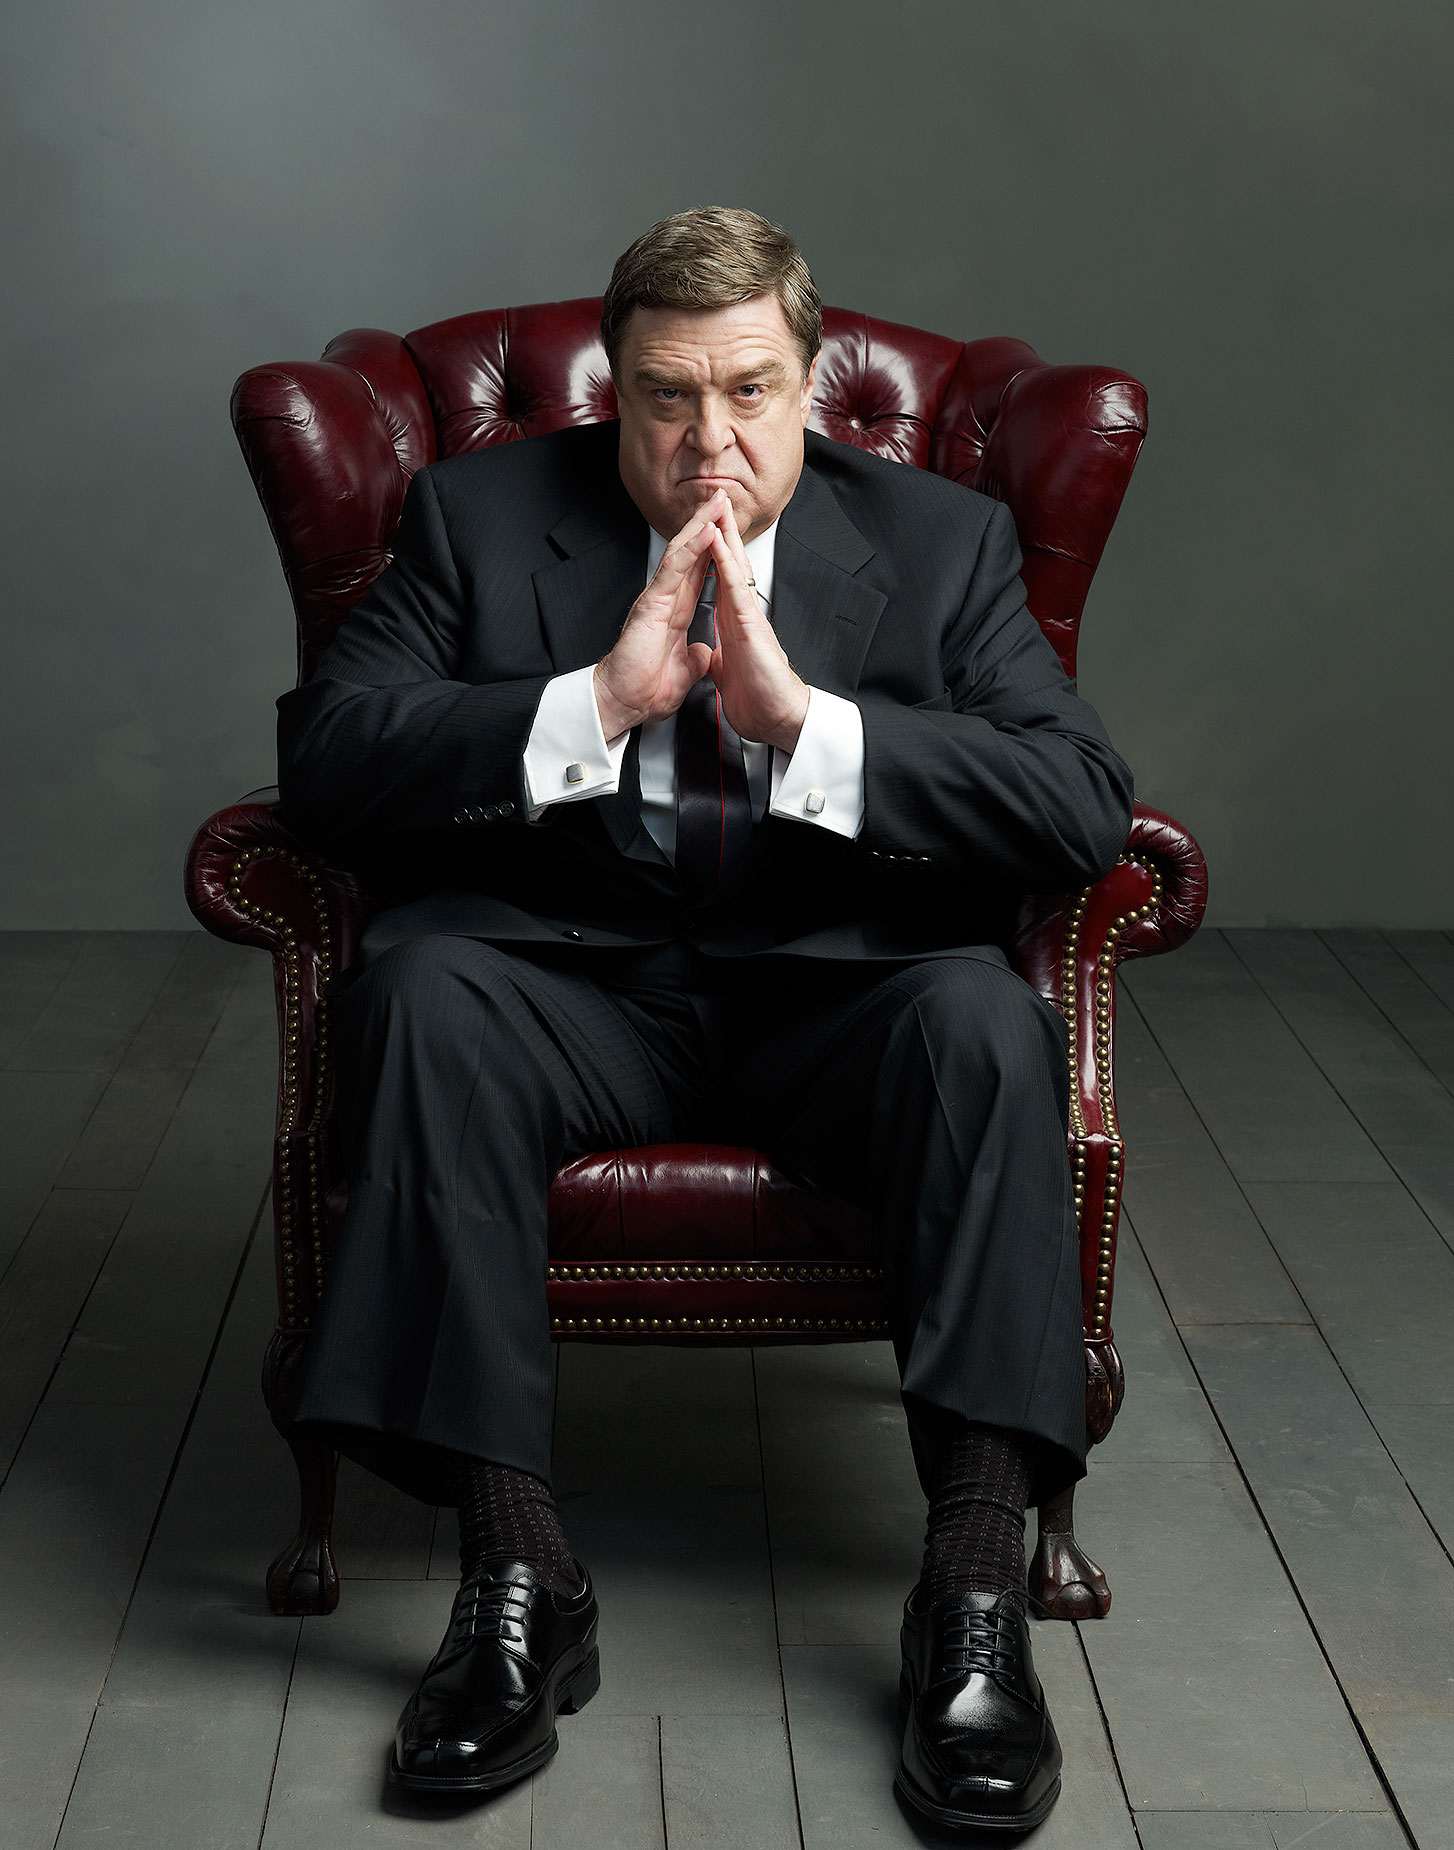 John-Goodman-by-Robert-Ascroft-02.jpg